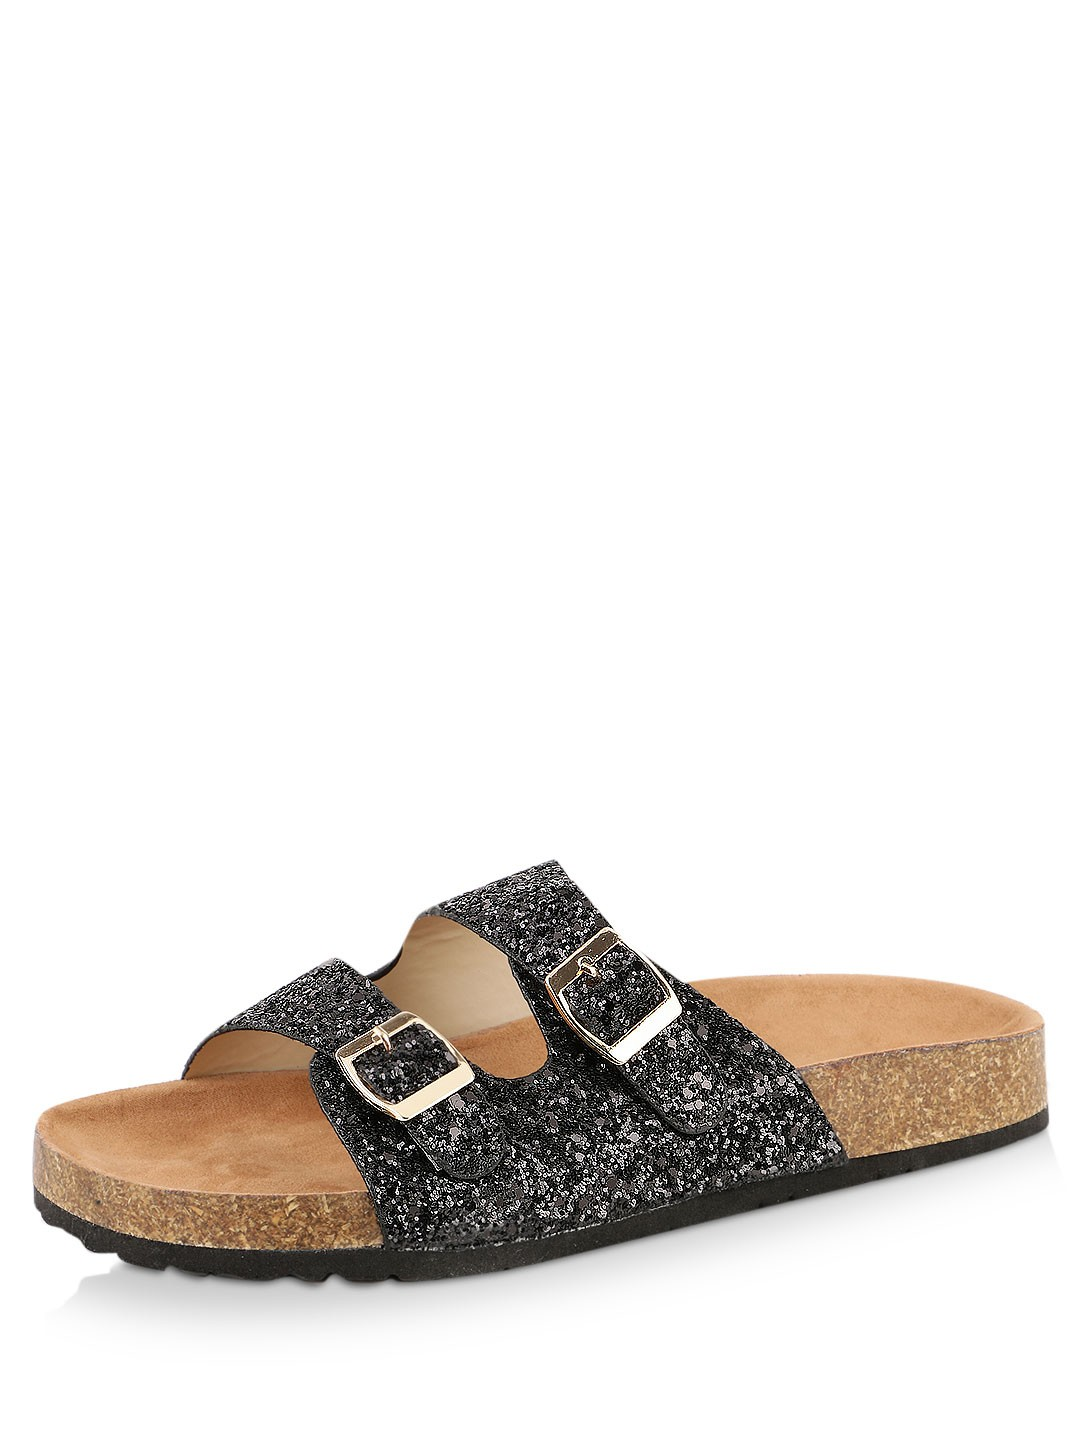 Buy My Foot Couture Black Glitter Slides With Cork Sole